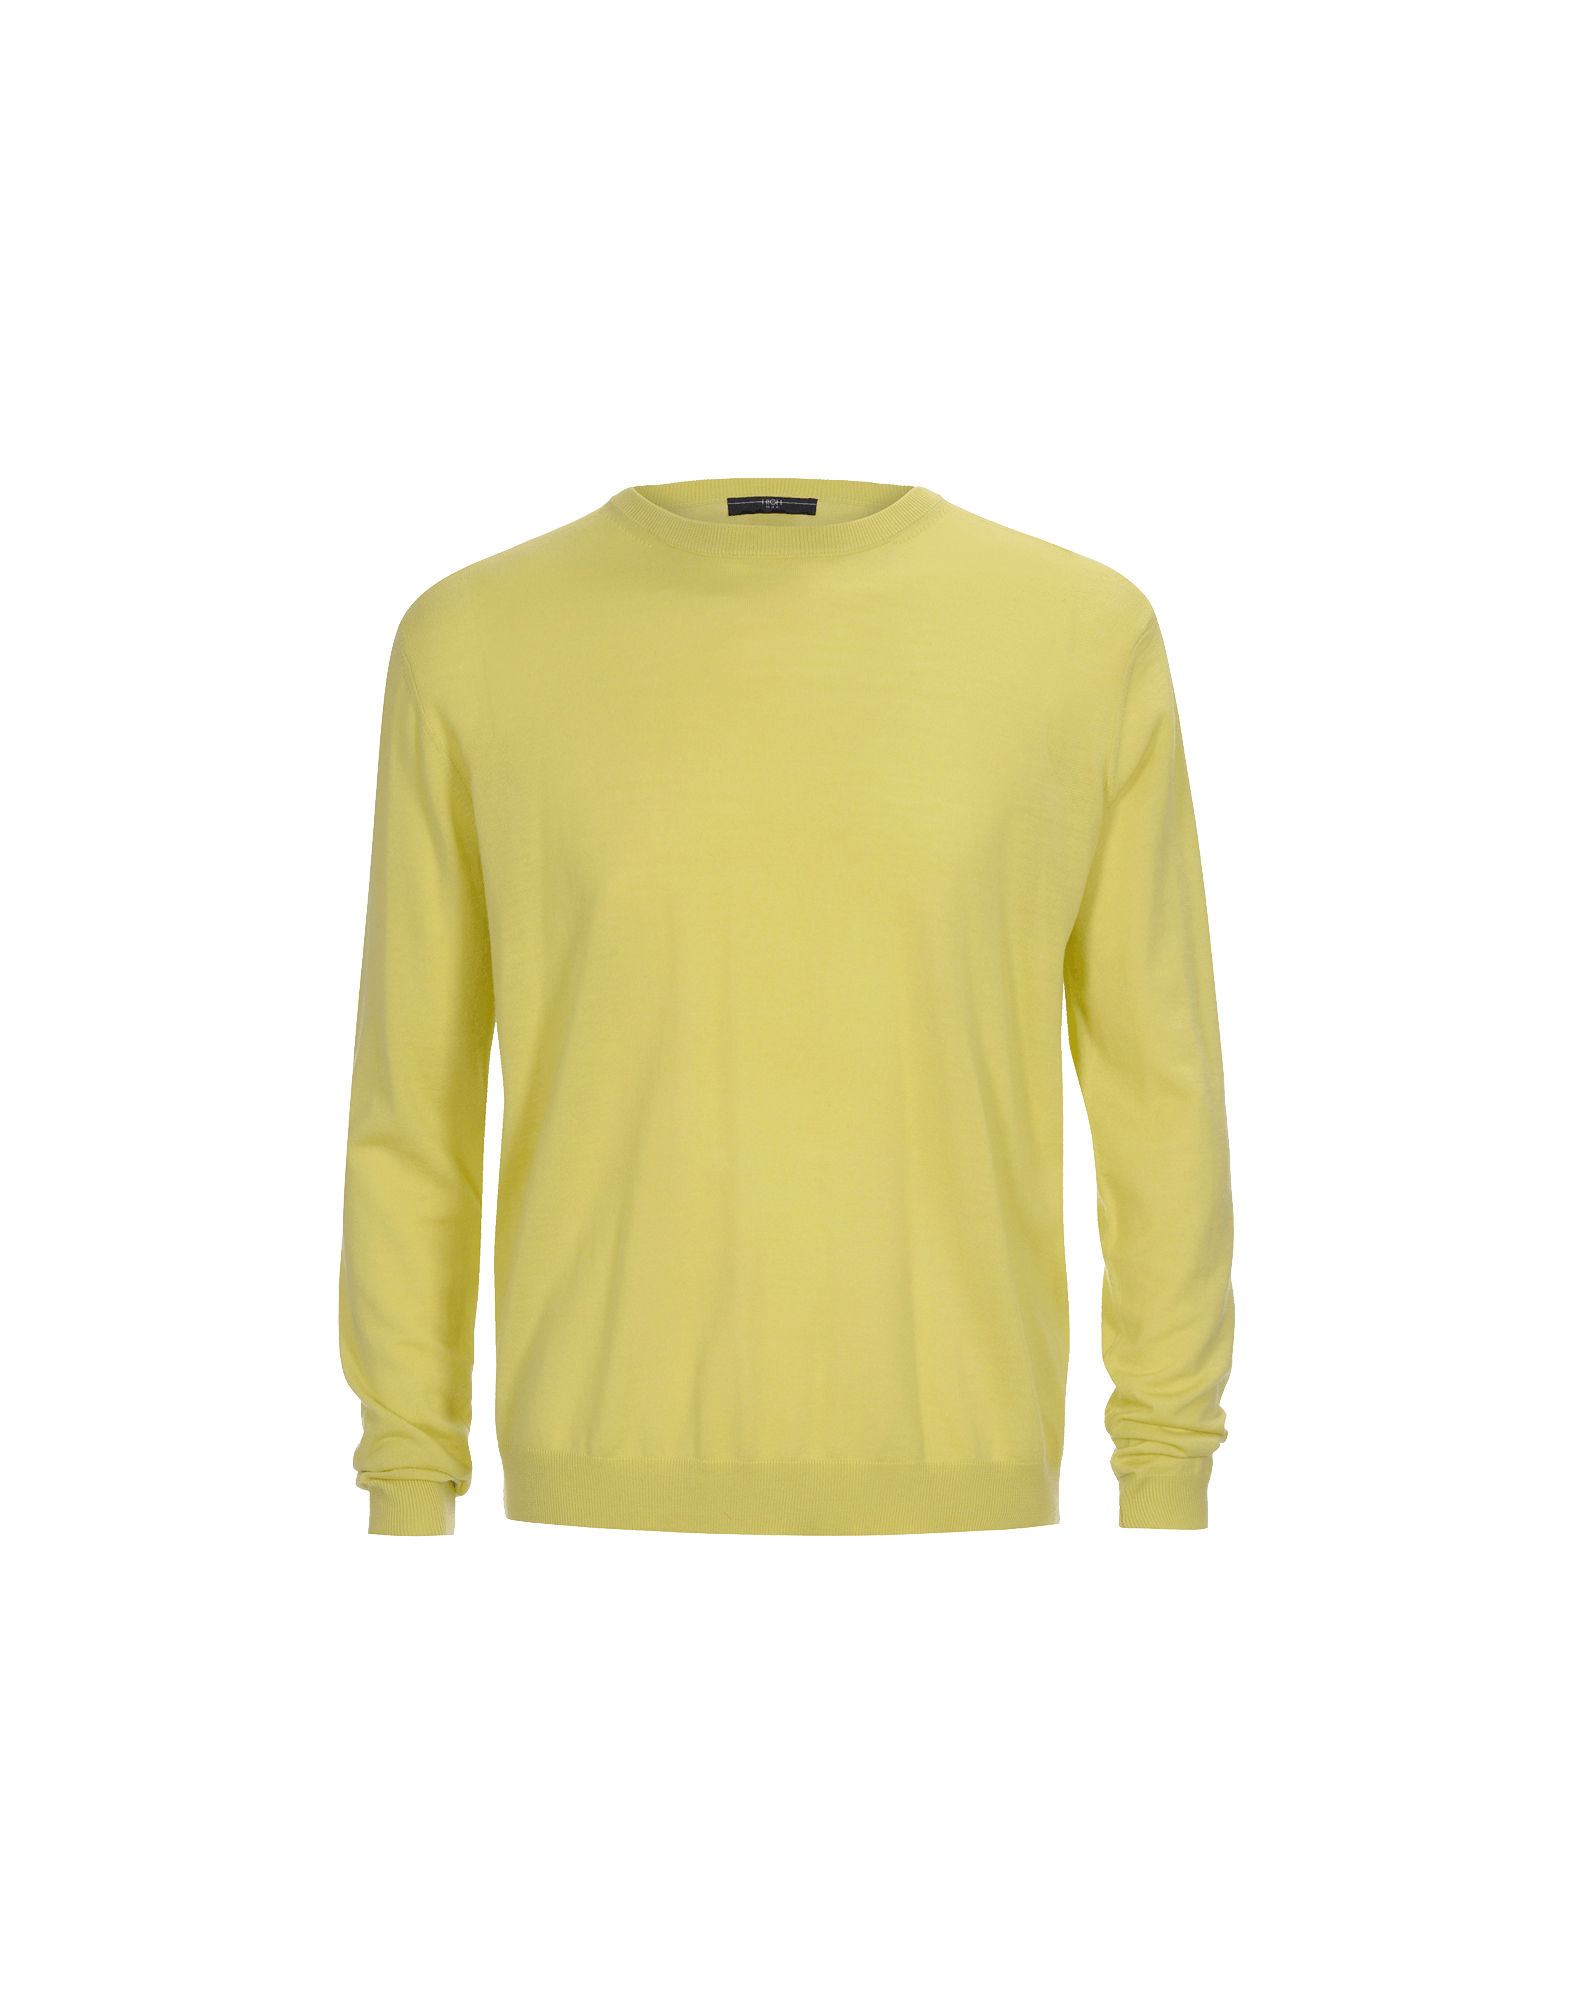 OBSERVE: Ultra light wool chartreuse green sweater